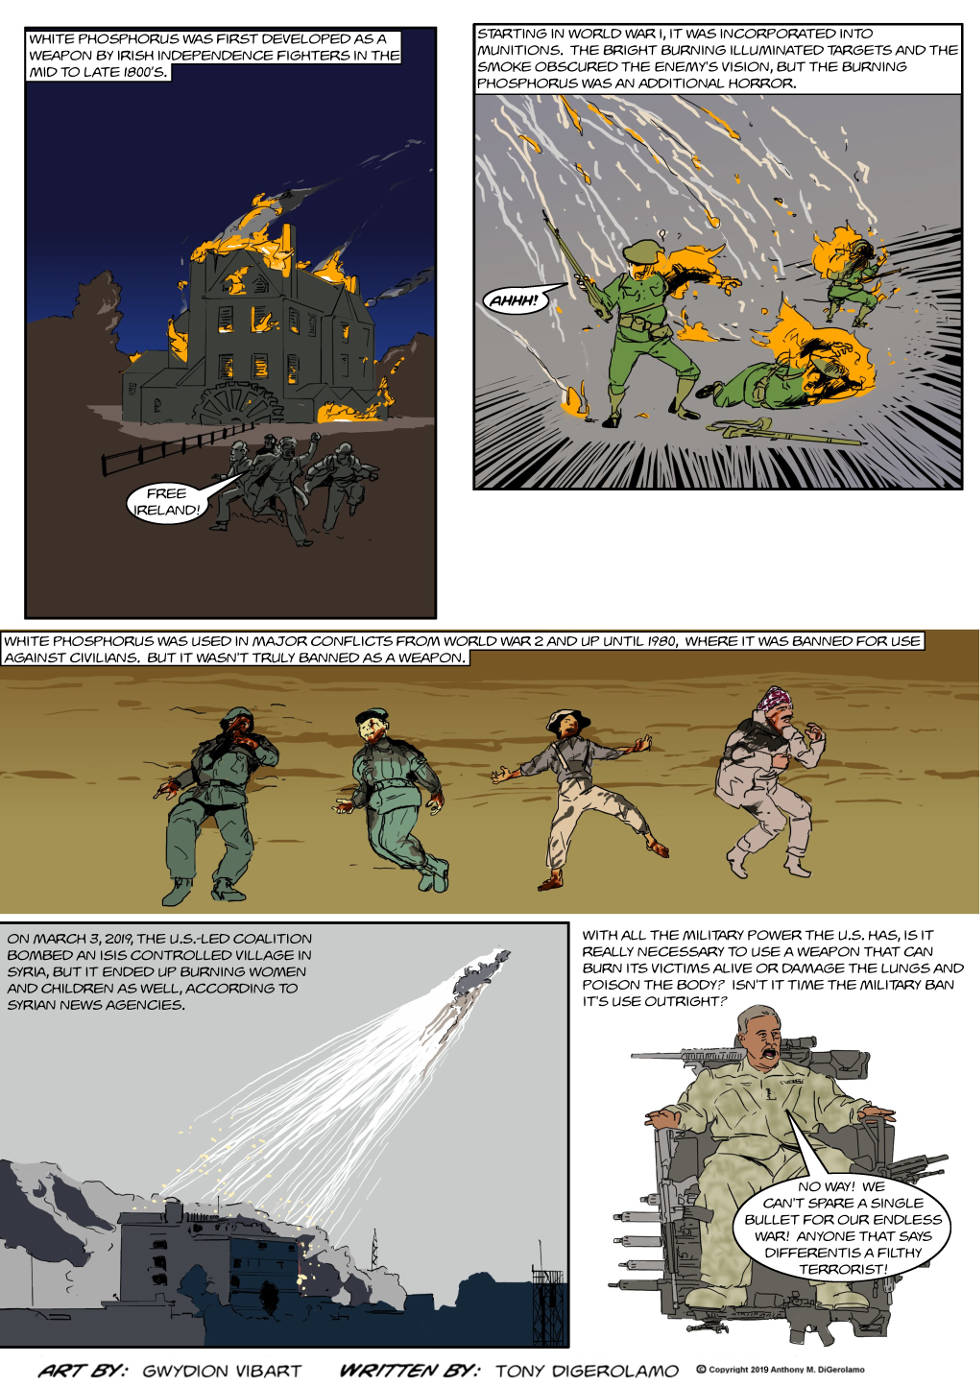 The Antiwar Comic:  White Phosphorus